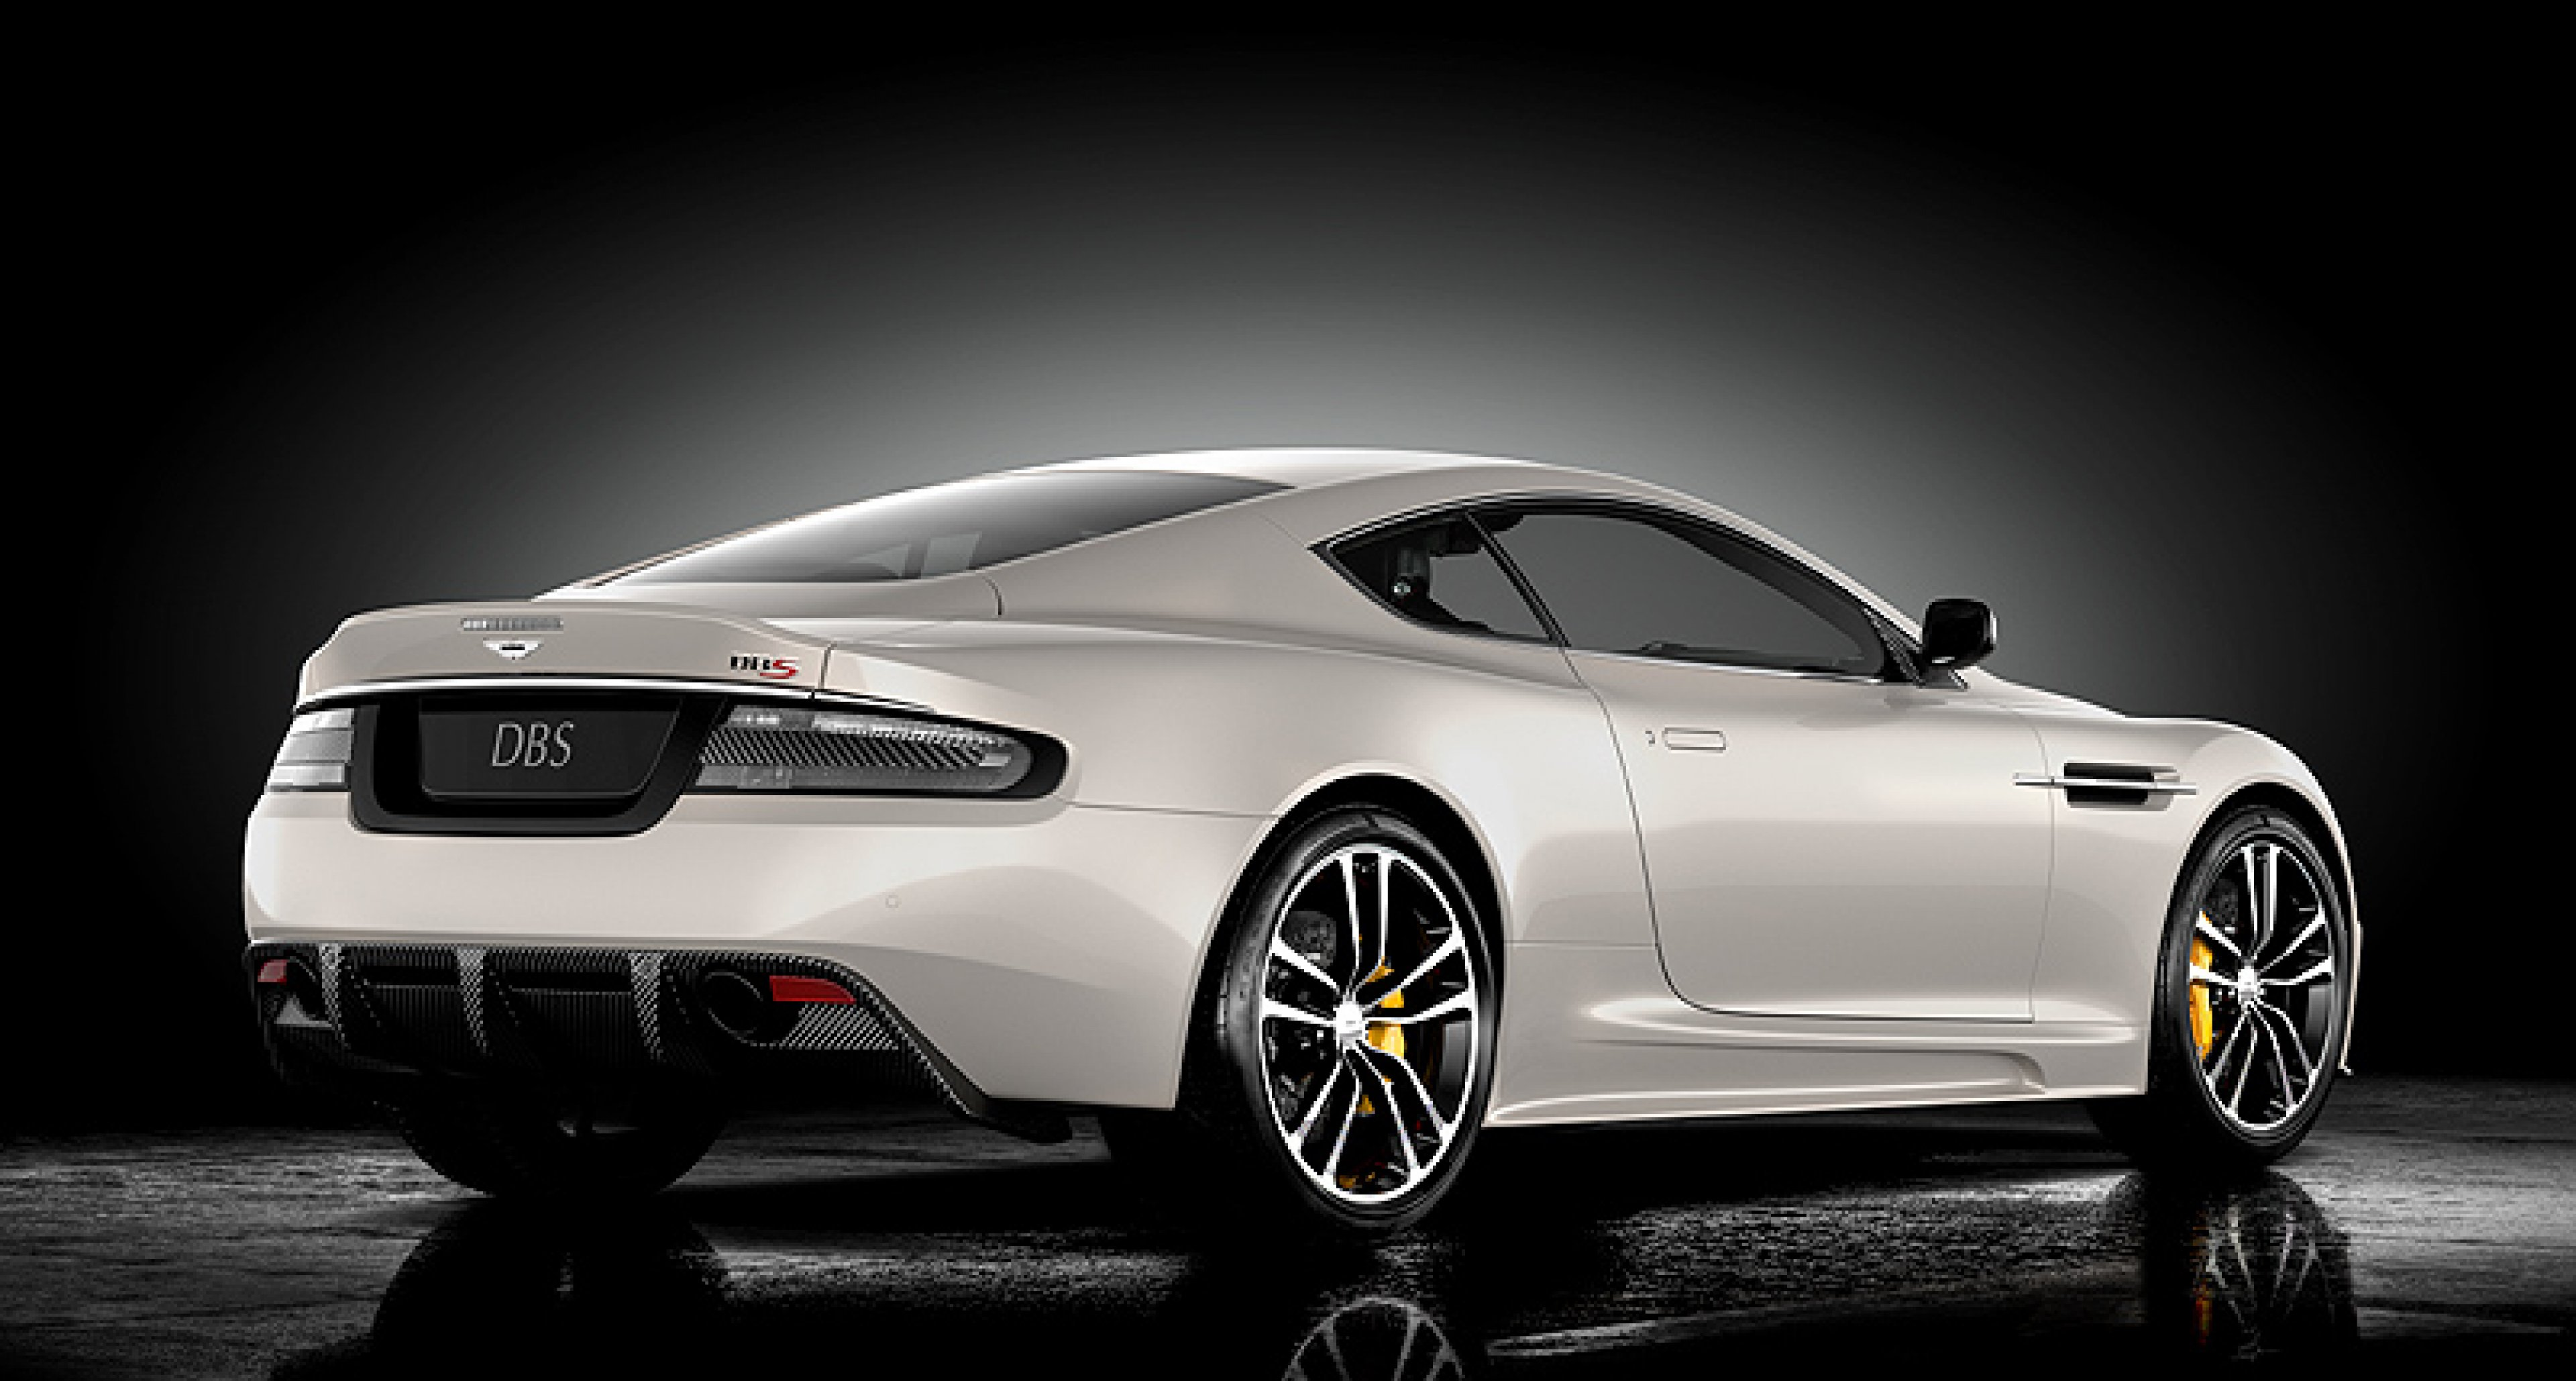 Aston Martin DBS Ultimate: Letztes Ultimatum